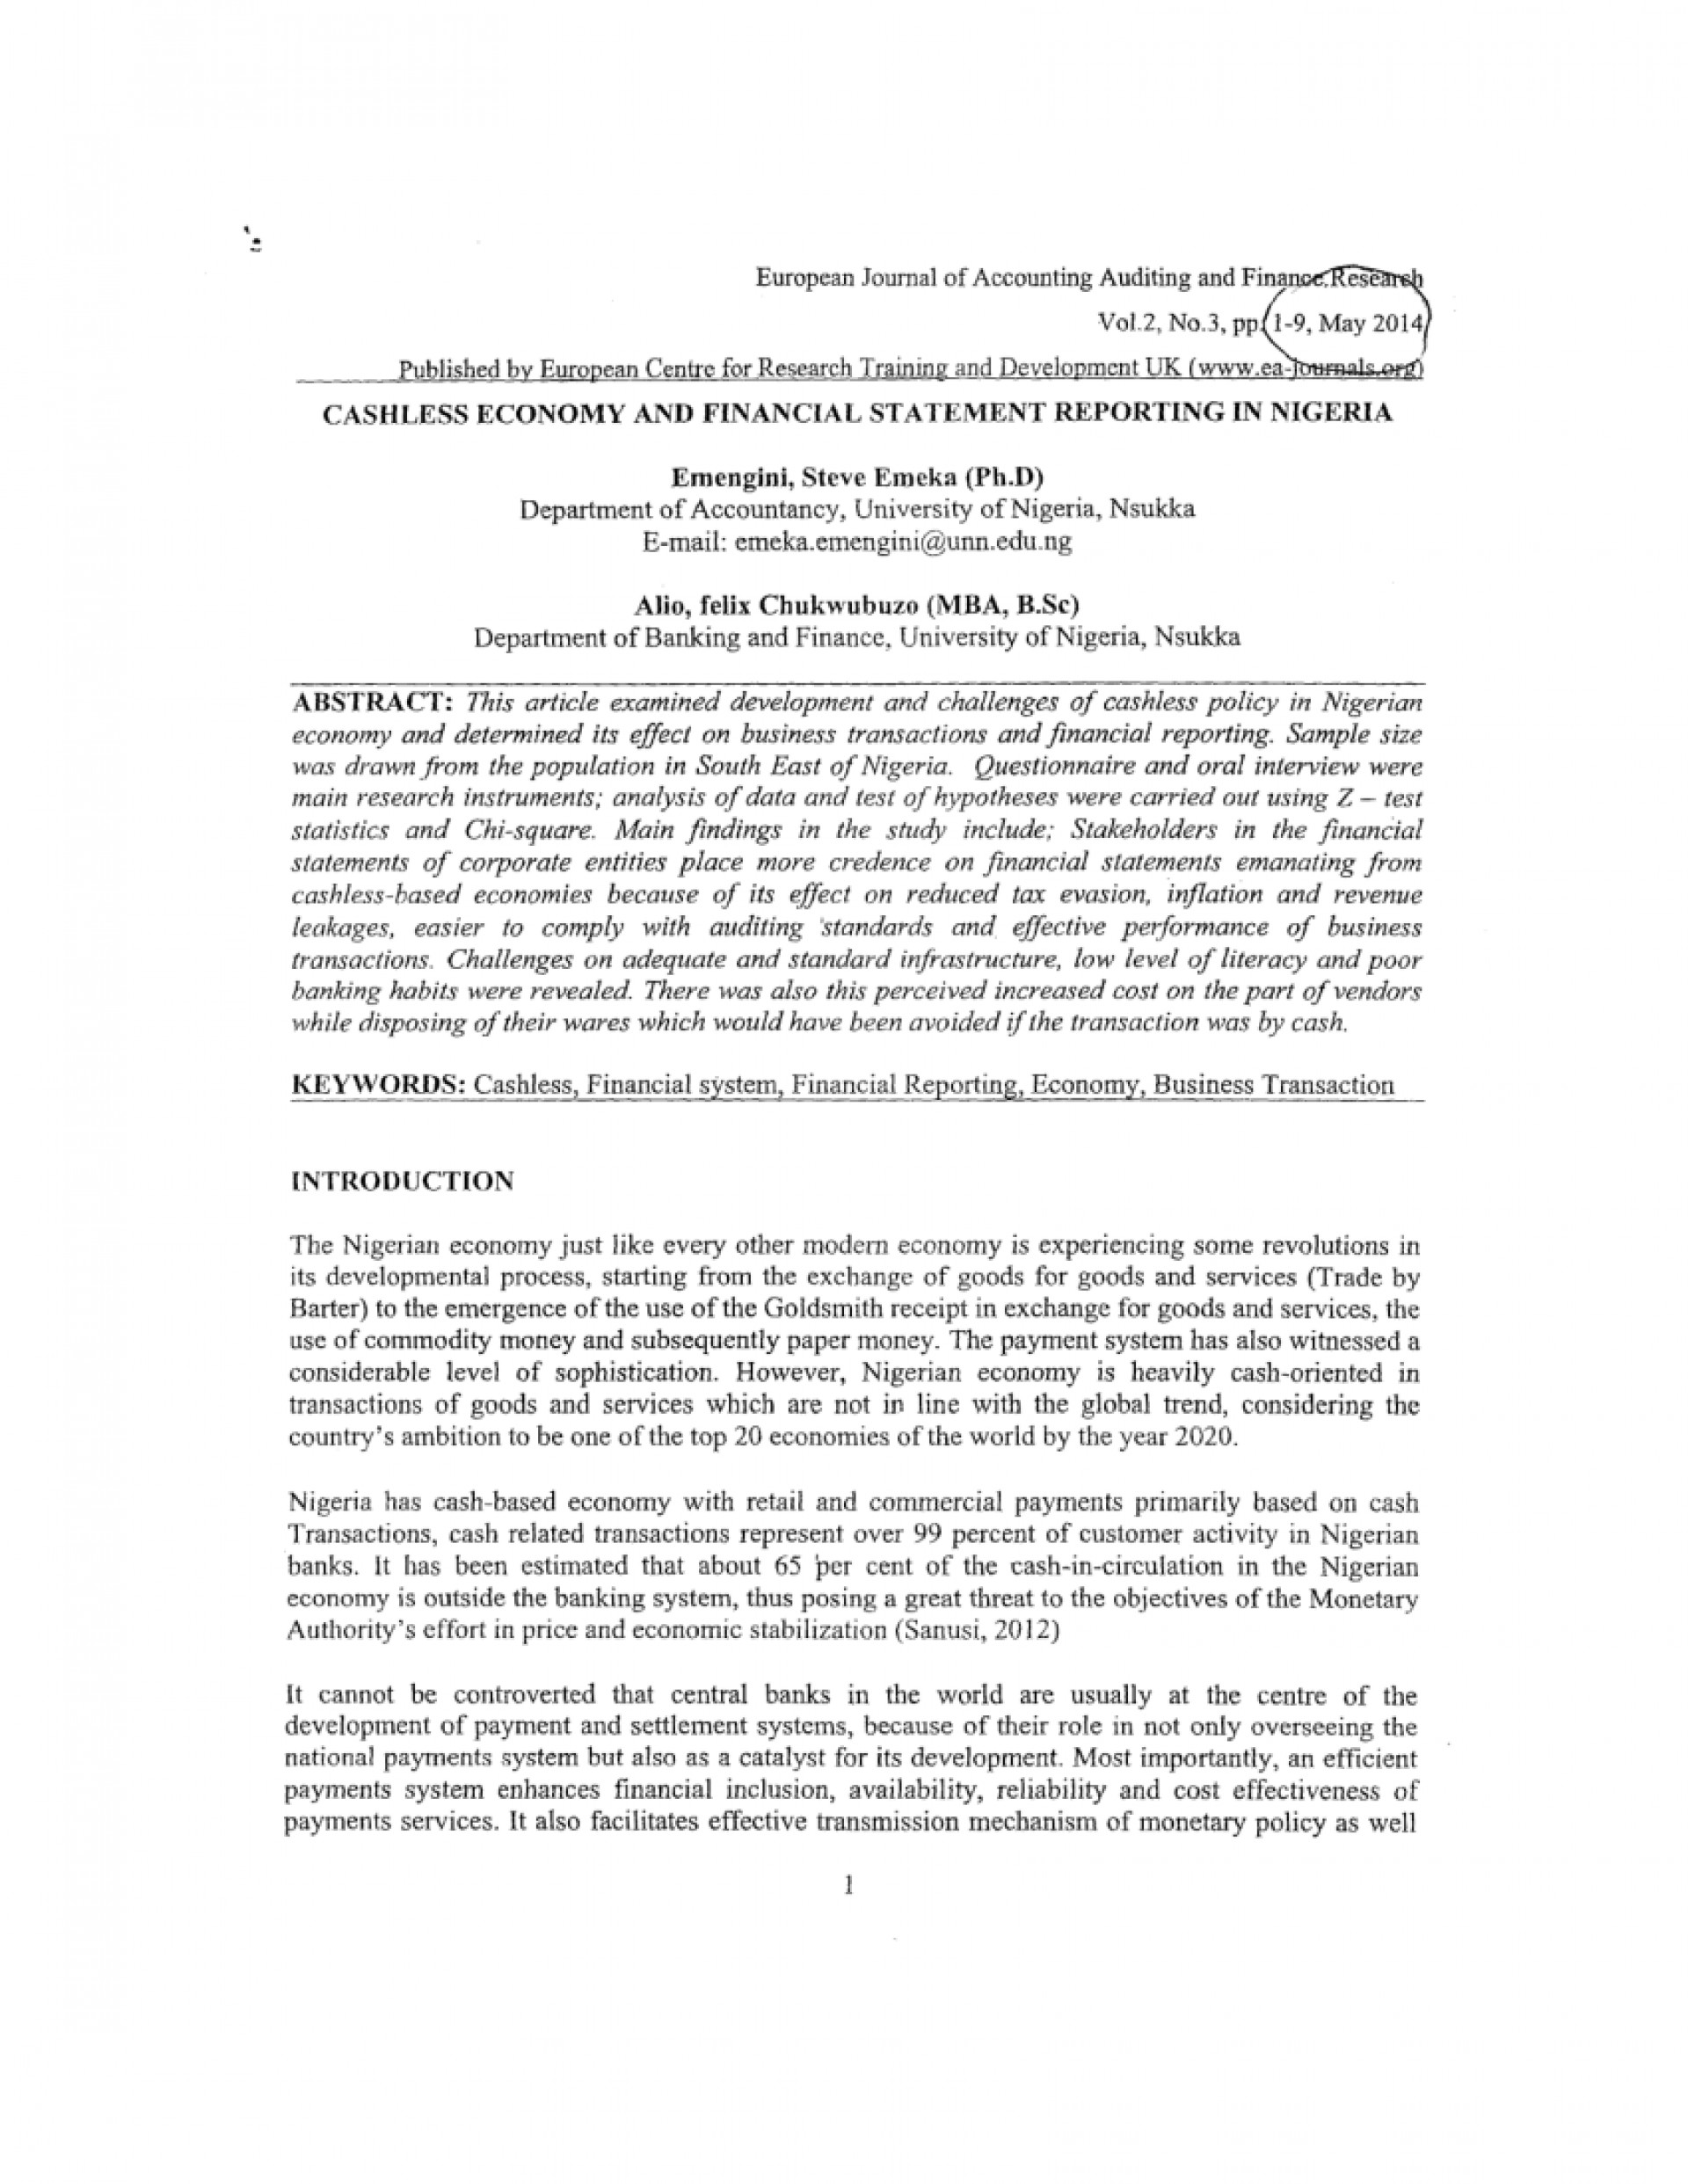 005 Cashless Economy Research Paper Frightening Papers Pdf Cash To 1920